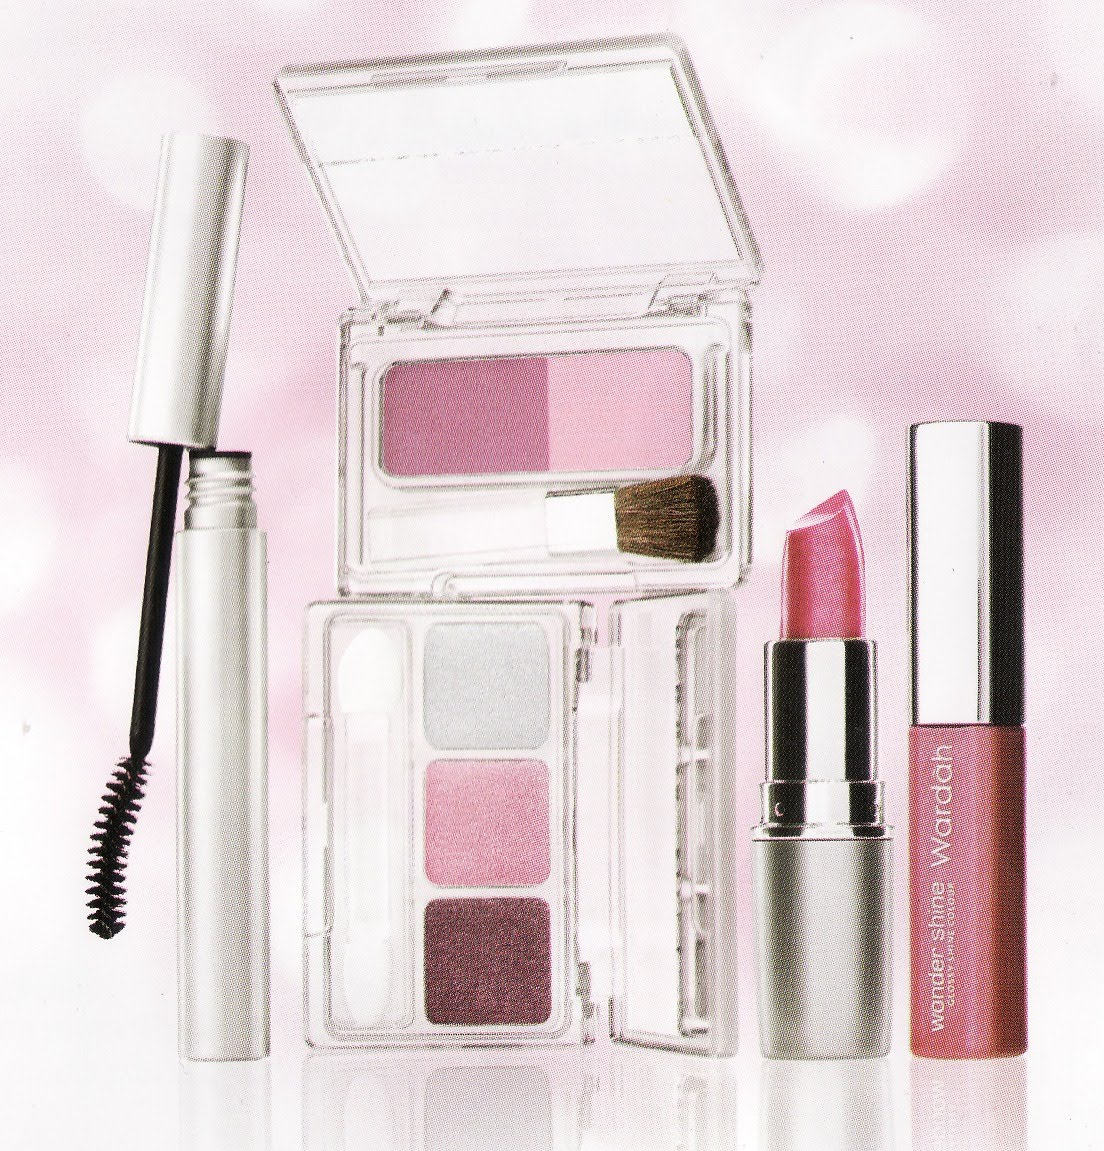 Produk Wardah Make Up Kit Makeup Looks Ideas Trends Special Edition Image For